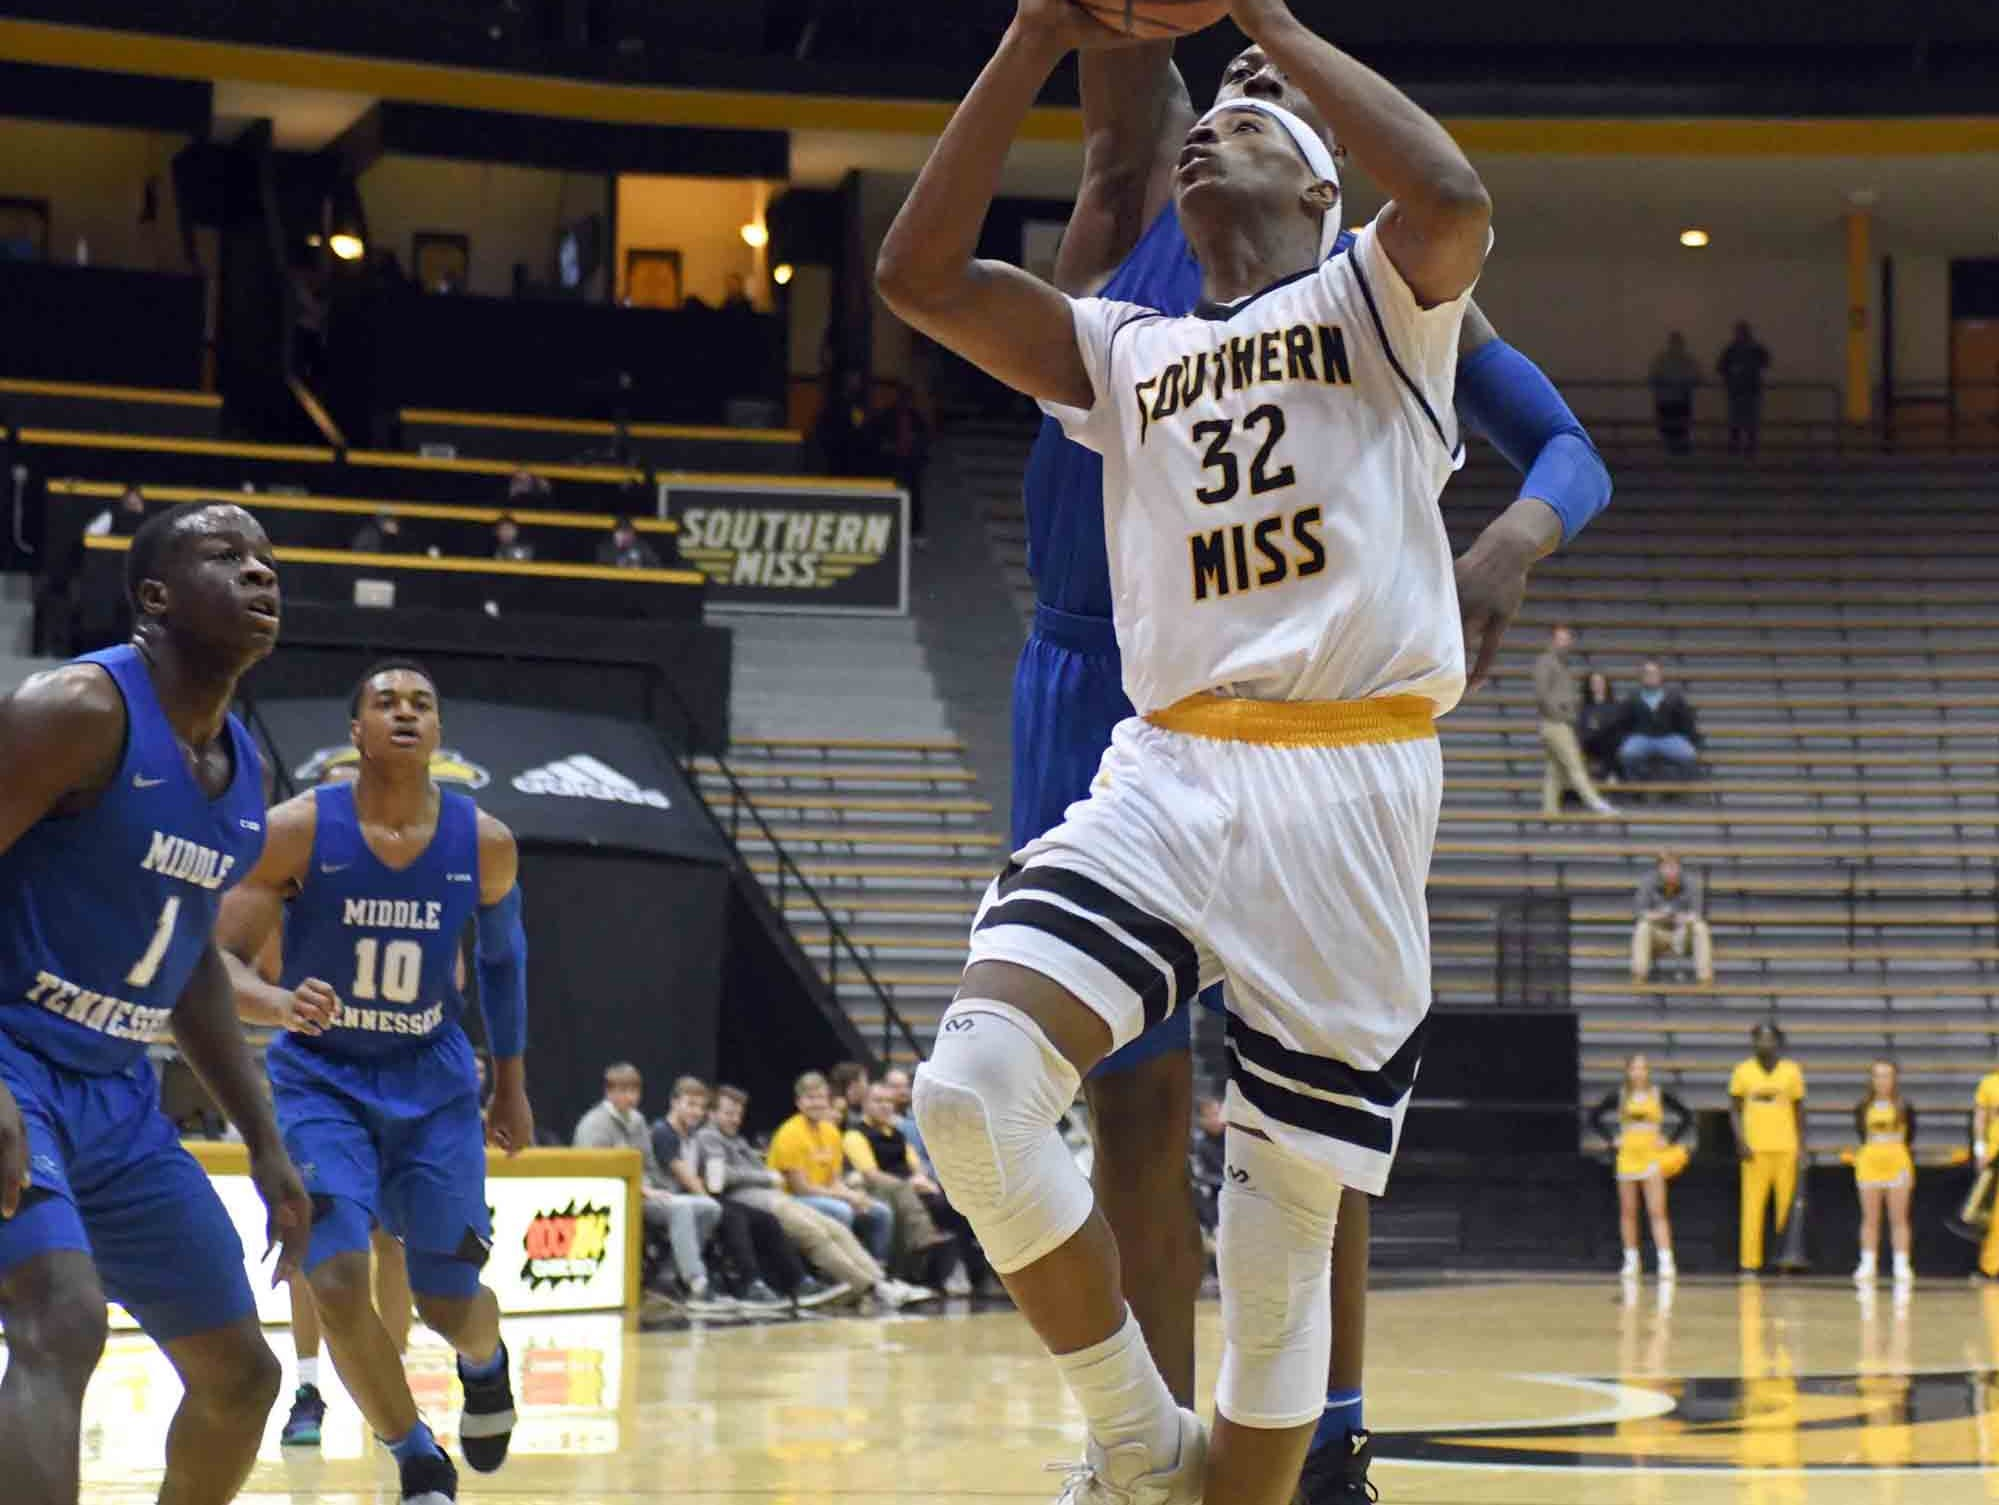 Southern Miss forward Leonard Harper-Baker shoots for the basket in a game against Middle Tennessee in Reed Green Coliseum on Thursday, January 10, 2019.